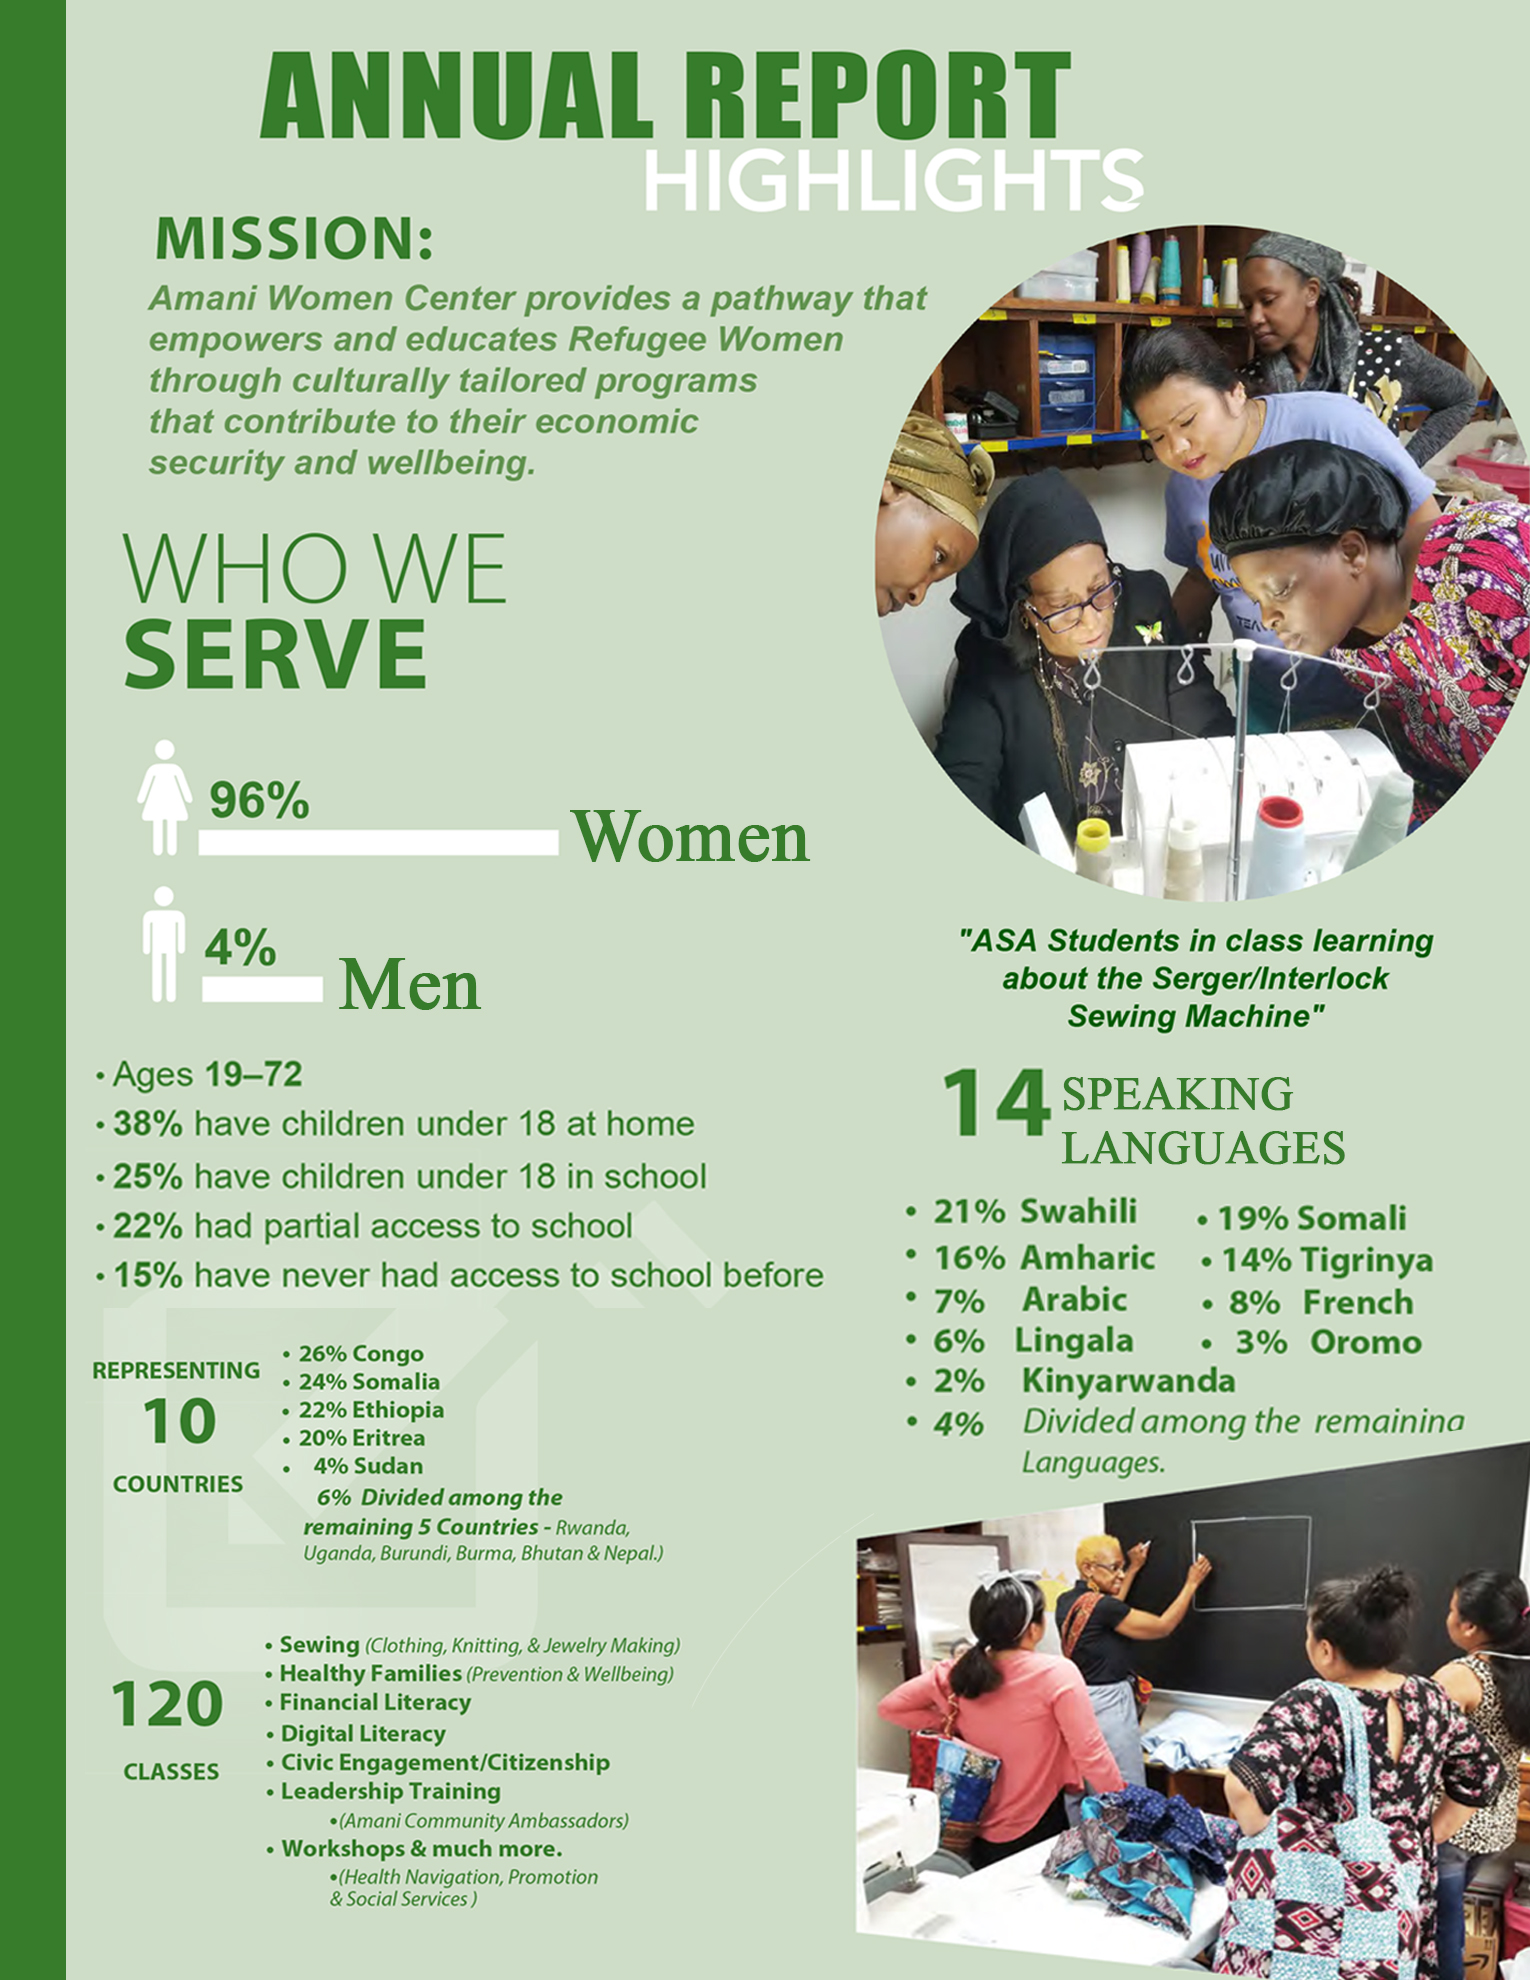 AWC-ANNUAL REPORT-1